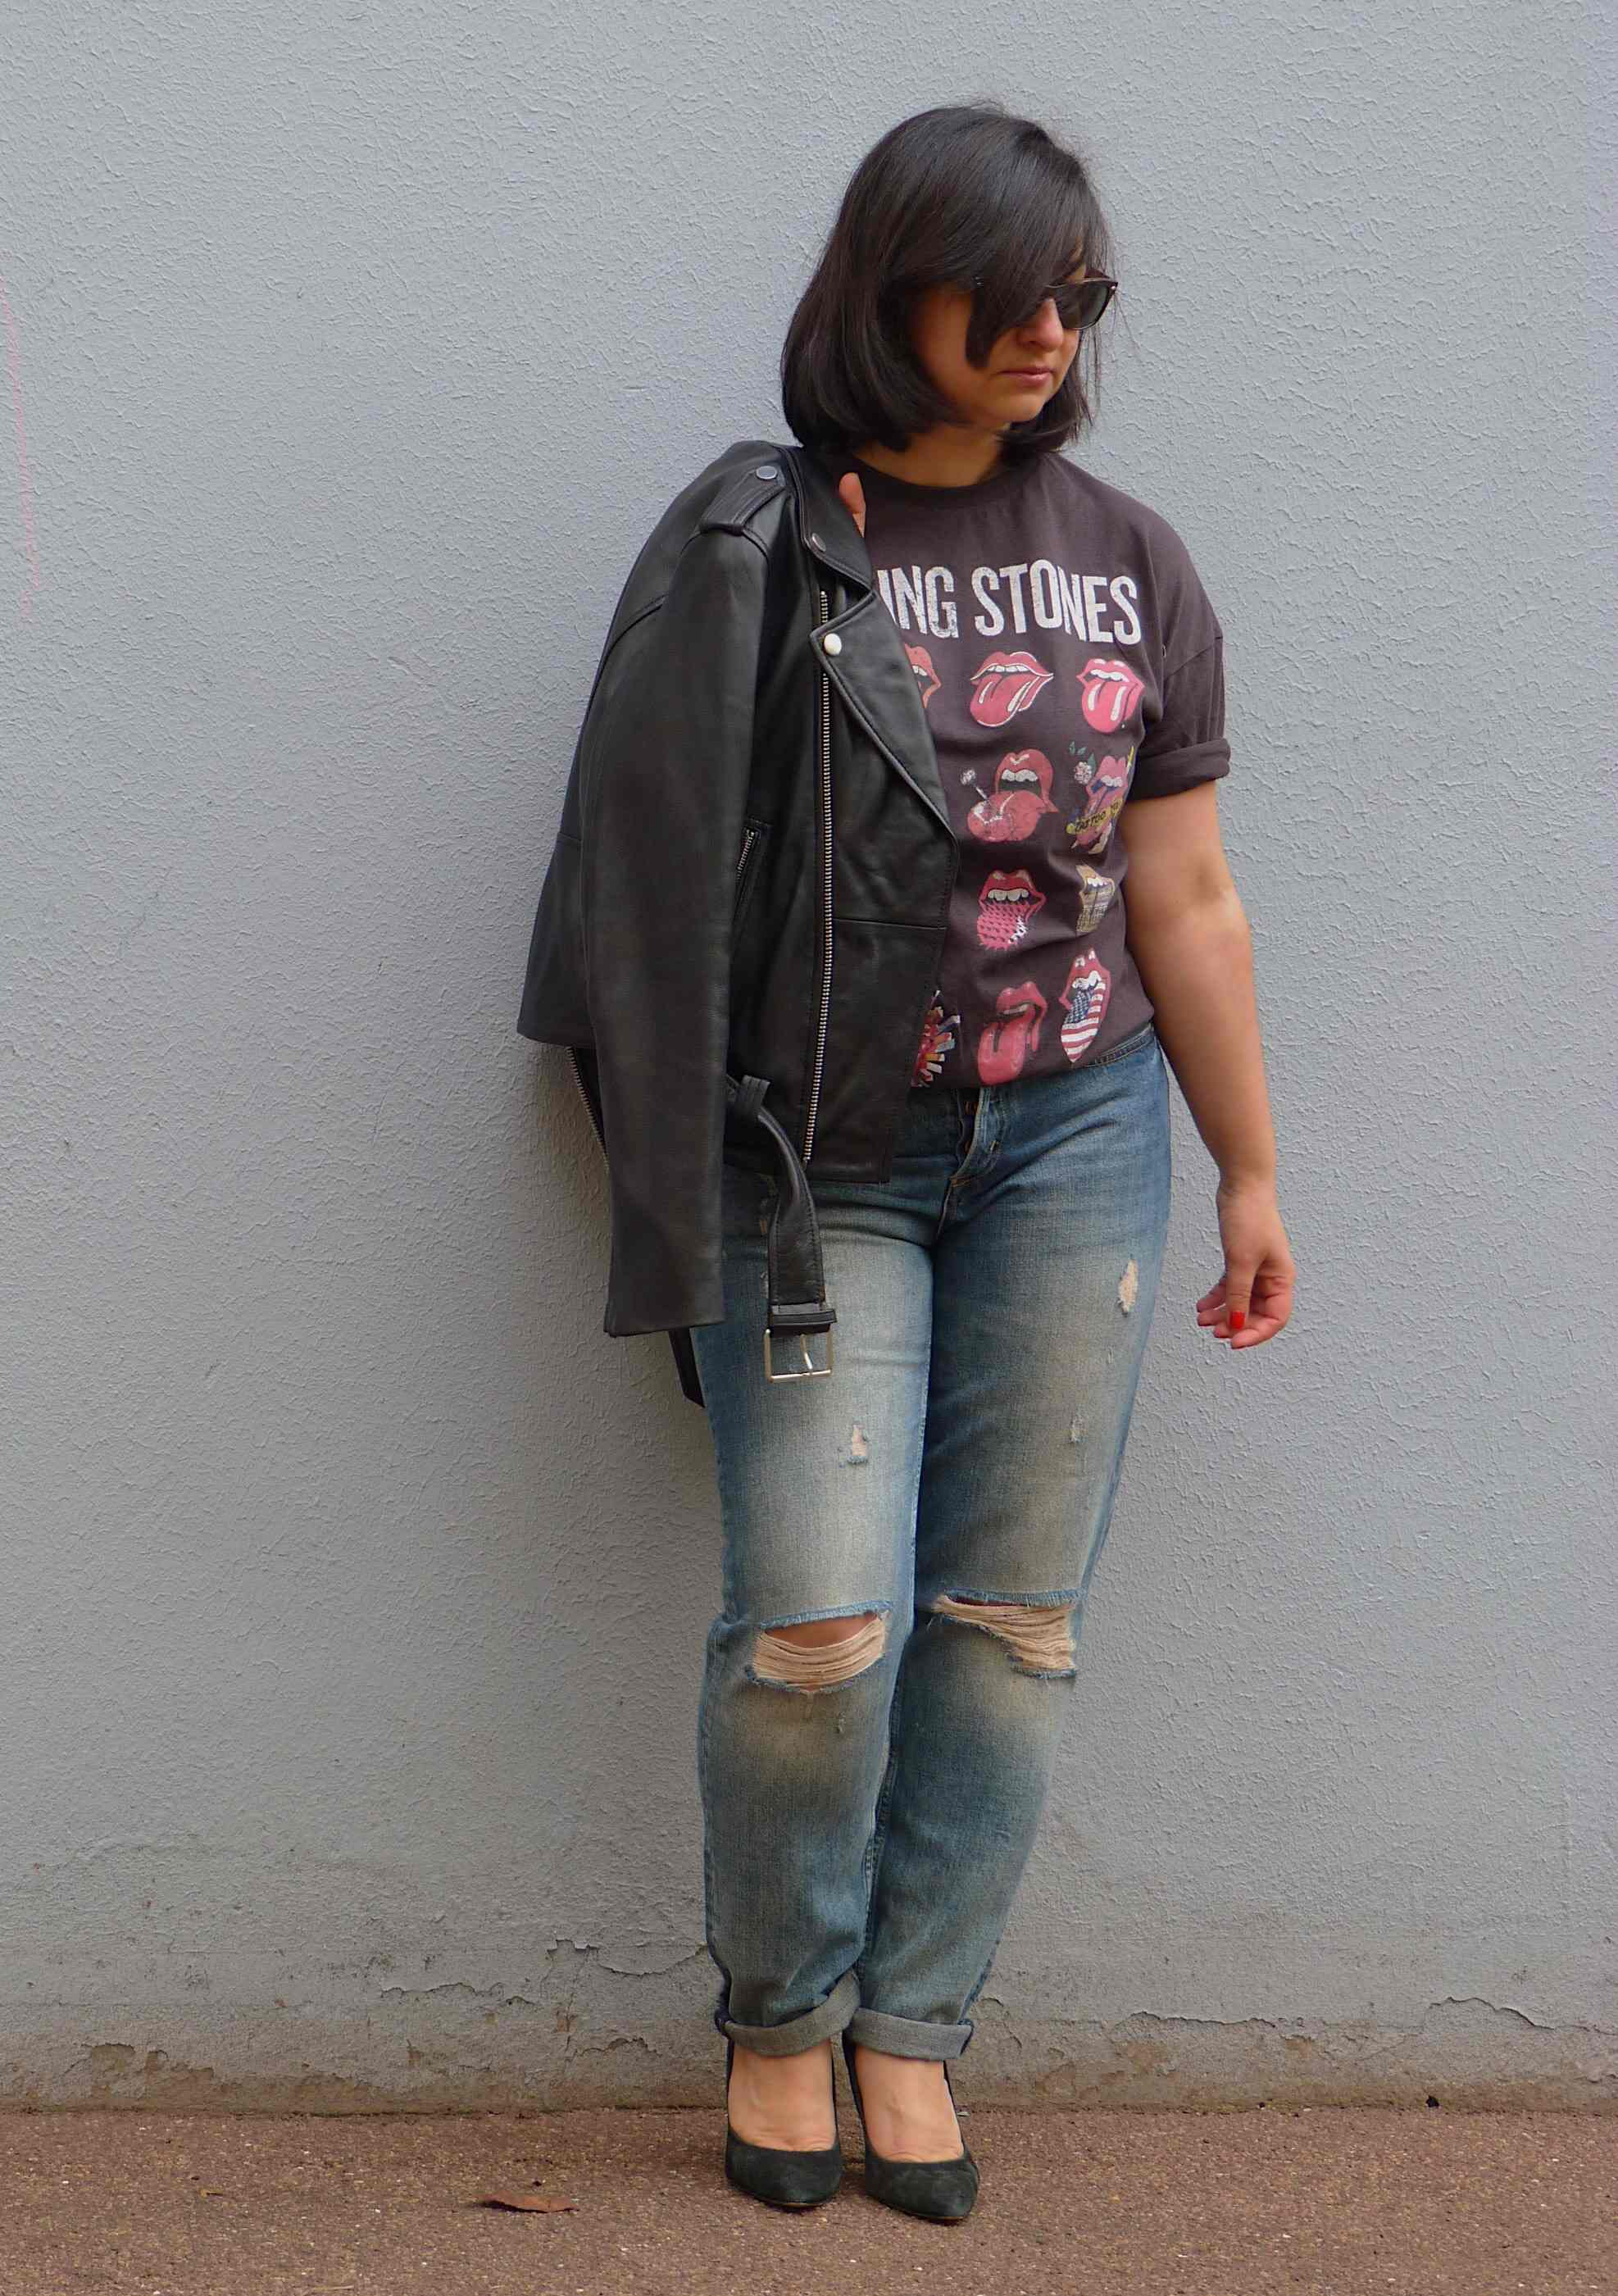 Tee Rolling Stones - Pull and Bear (14)